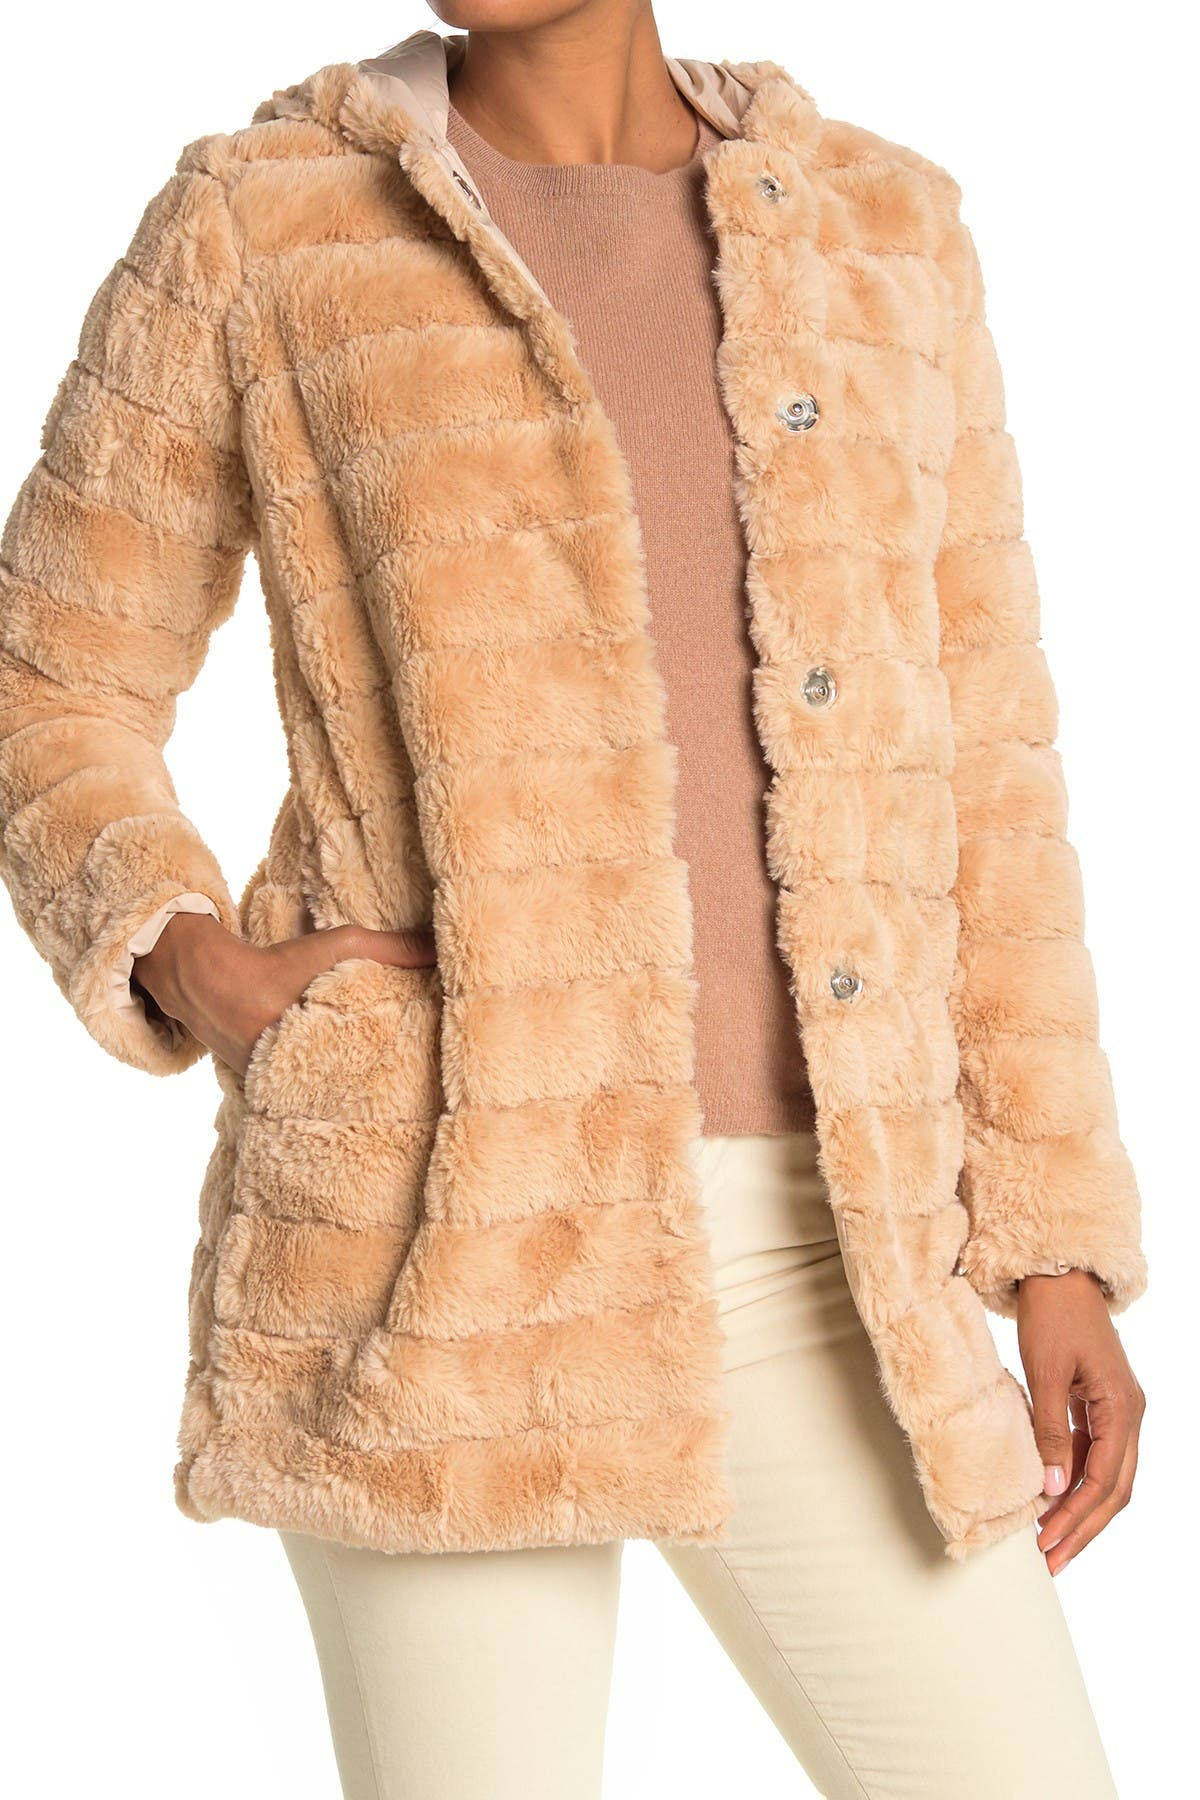 Kendall + Kylie Hooded Sheared Faux Fur Jacket In Nude